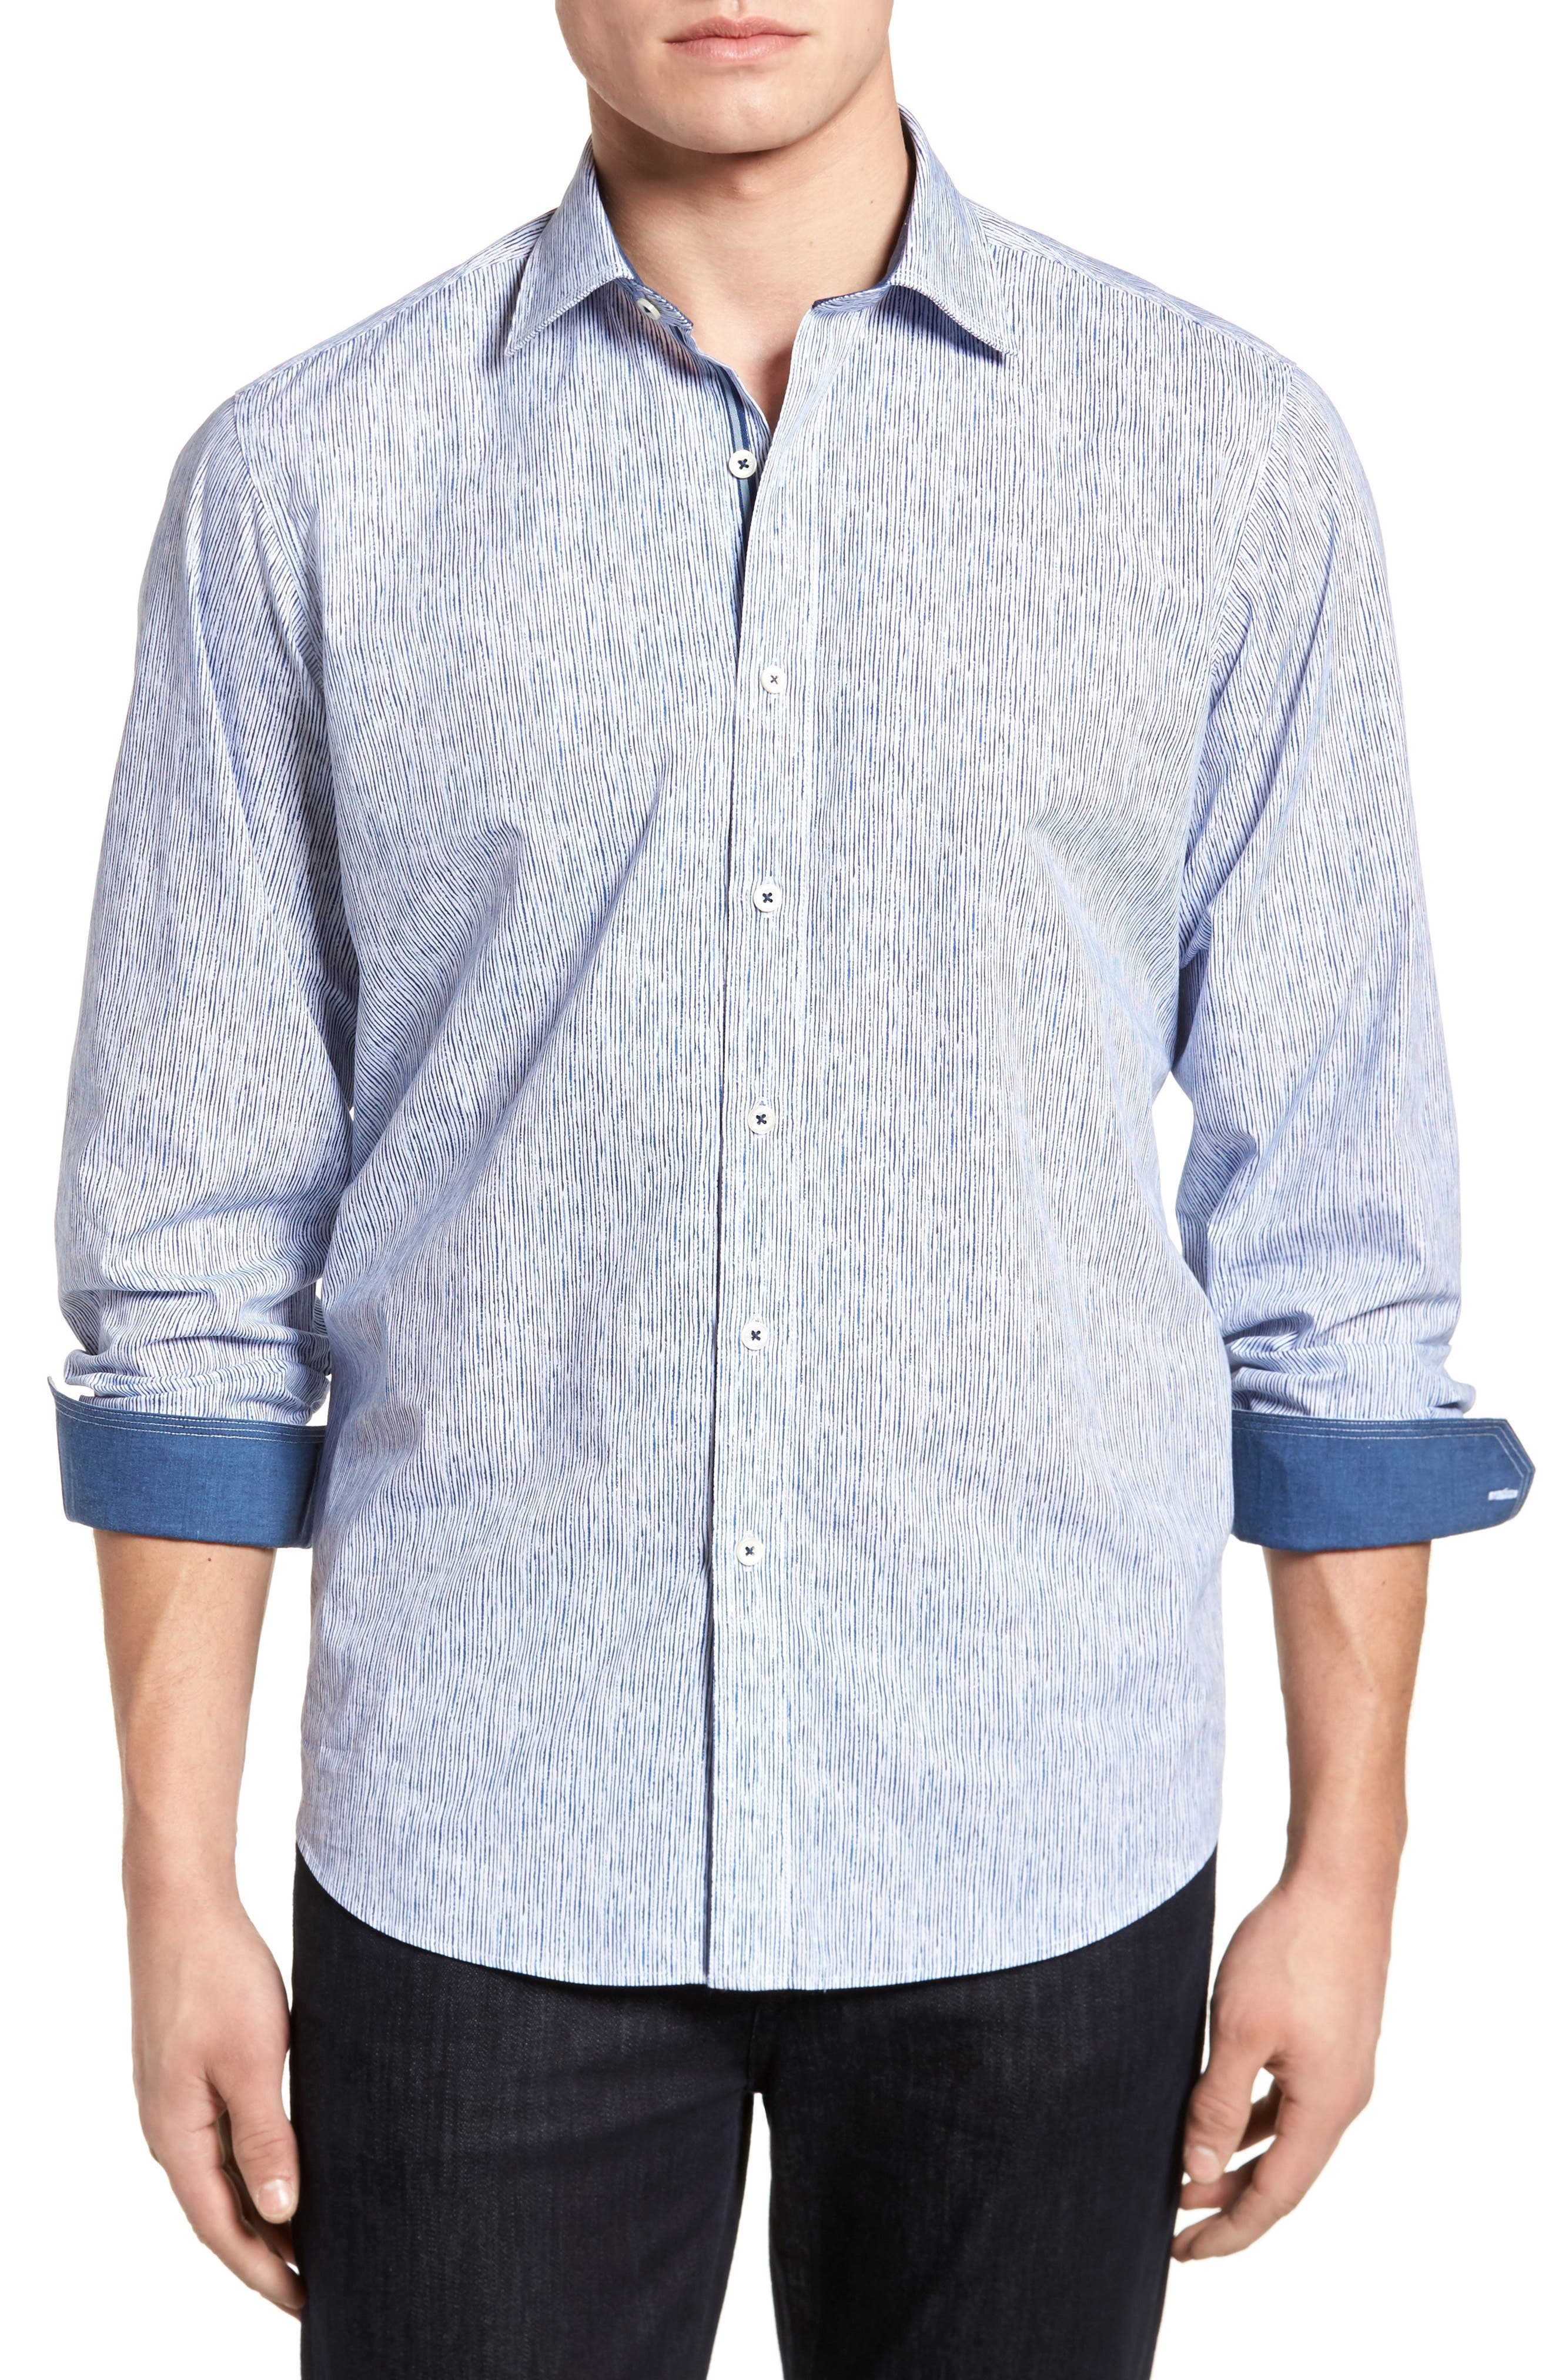 Freehand Pin Lines Classic Fit Sport Shirt,                         Main,                         color, Classic Blue